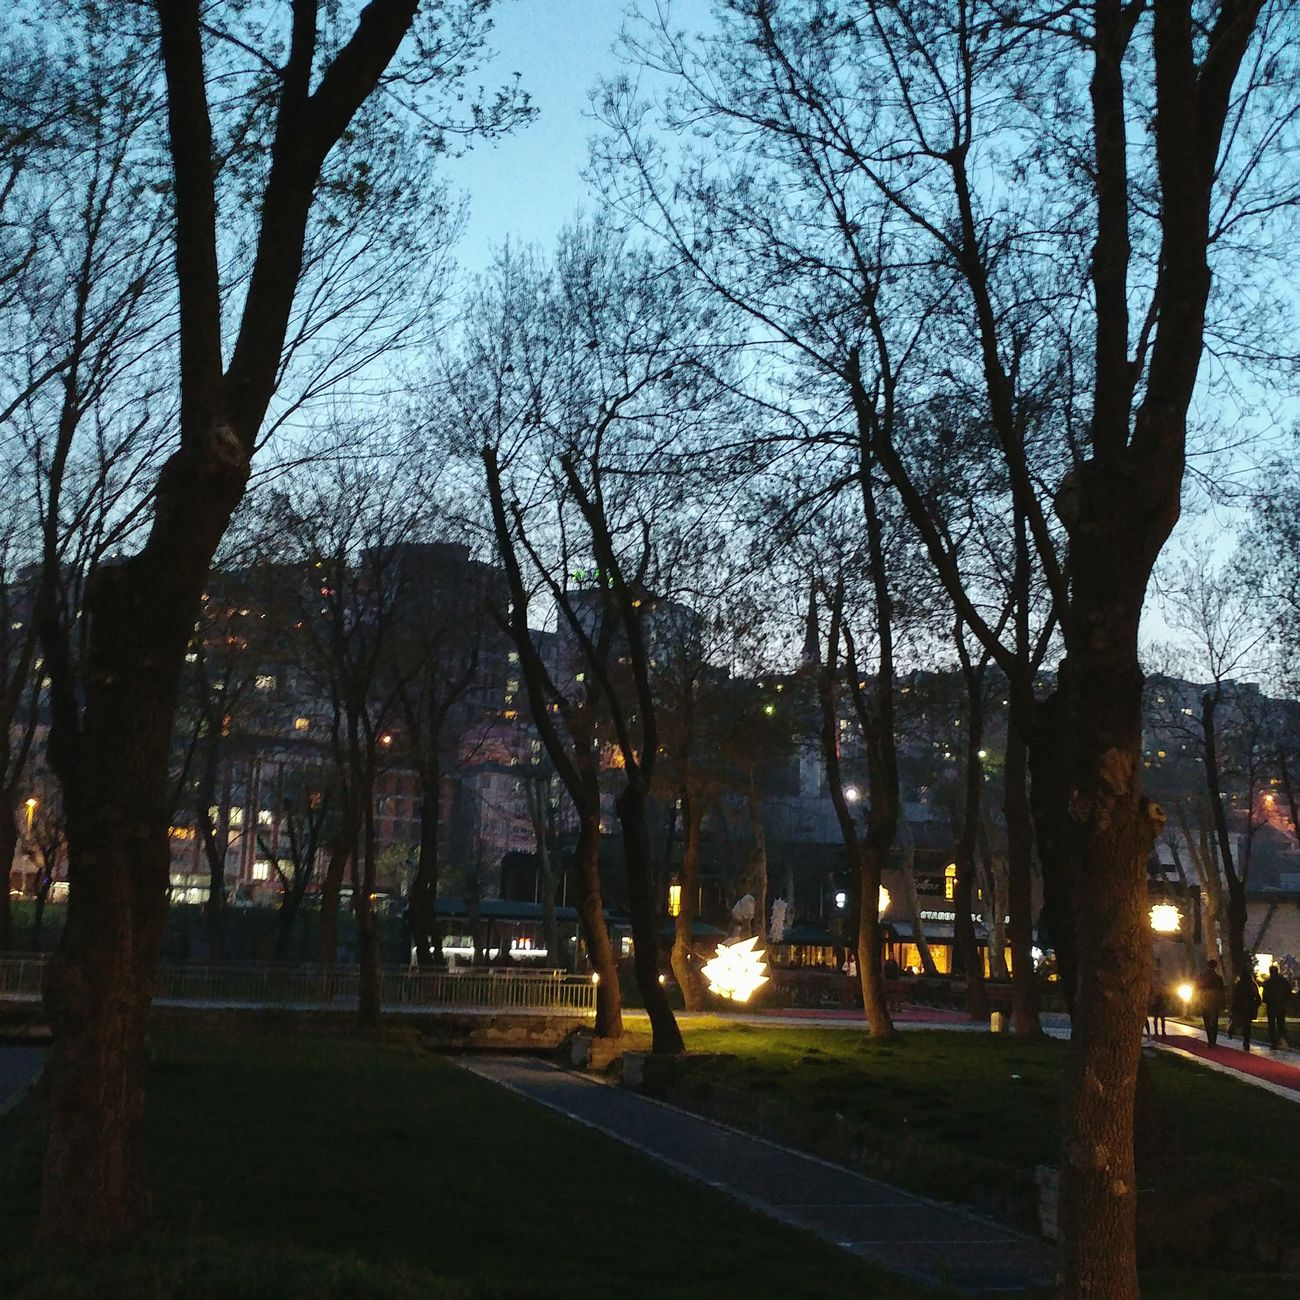 Tree Sky No People City Outdoors Nature Sunset Growth Architecture Day University Campus University Istanbul Turkey LG G5 Photography